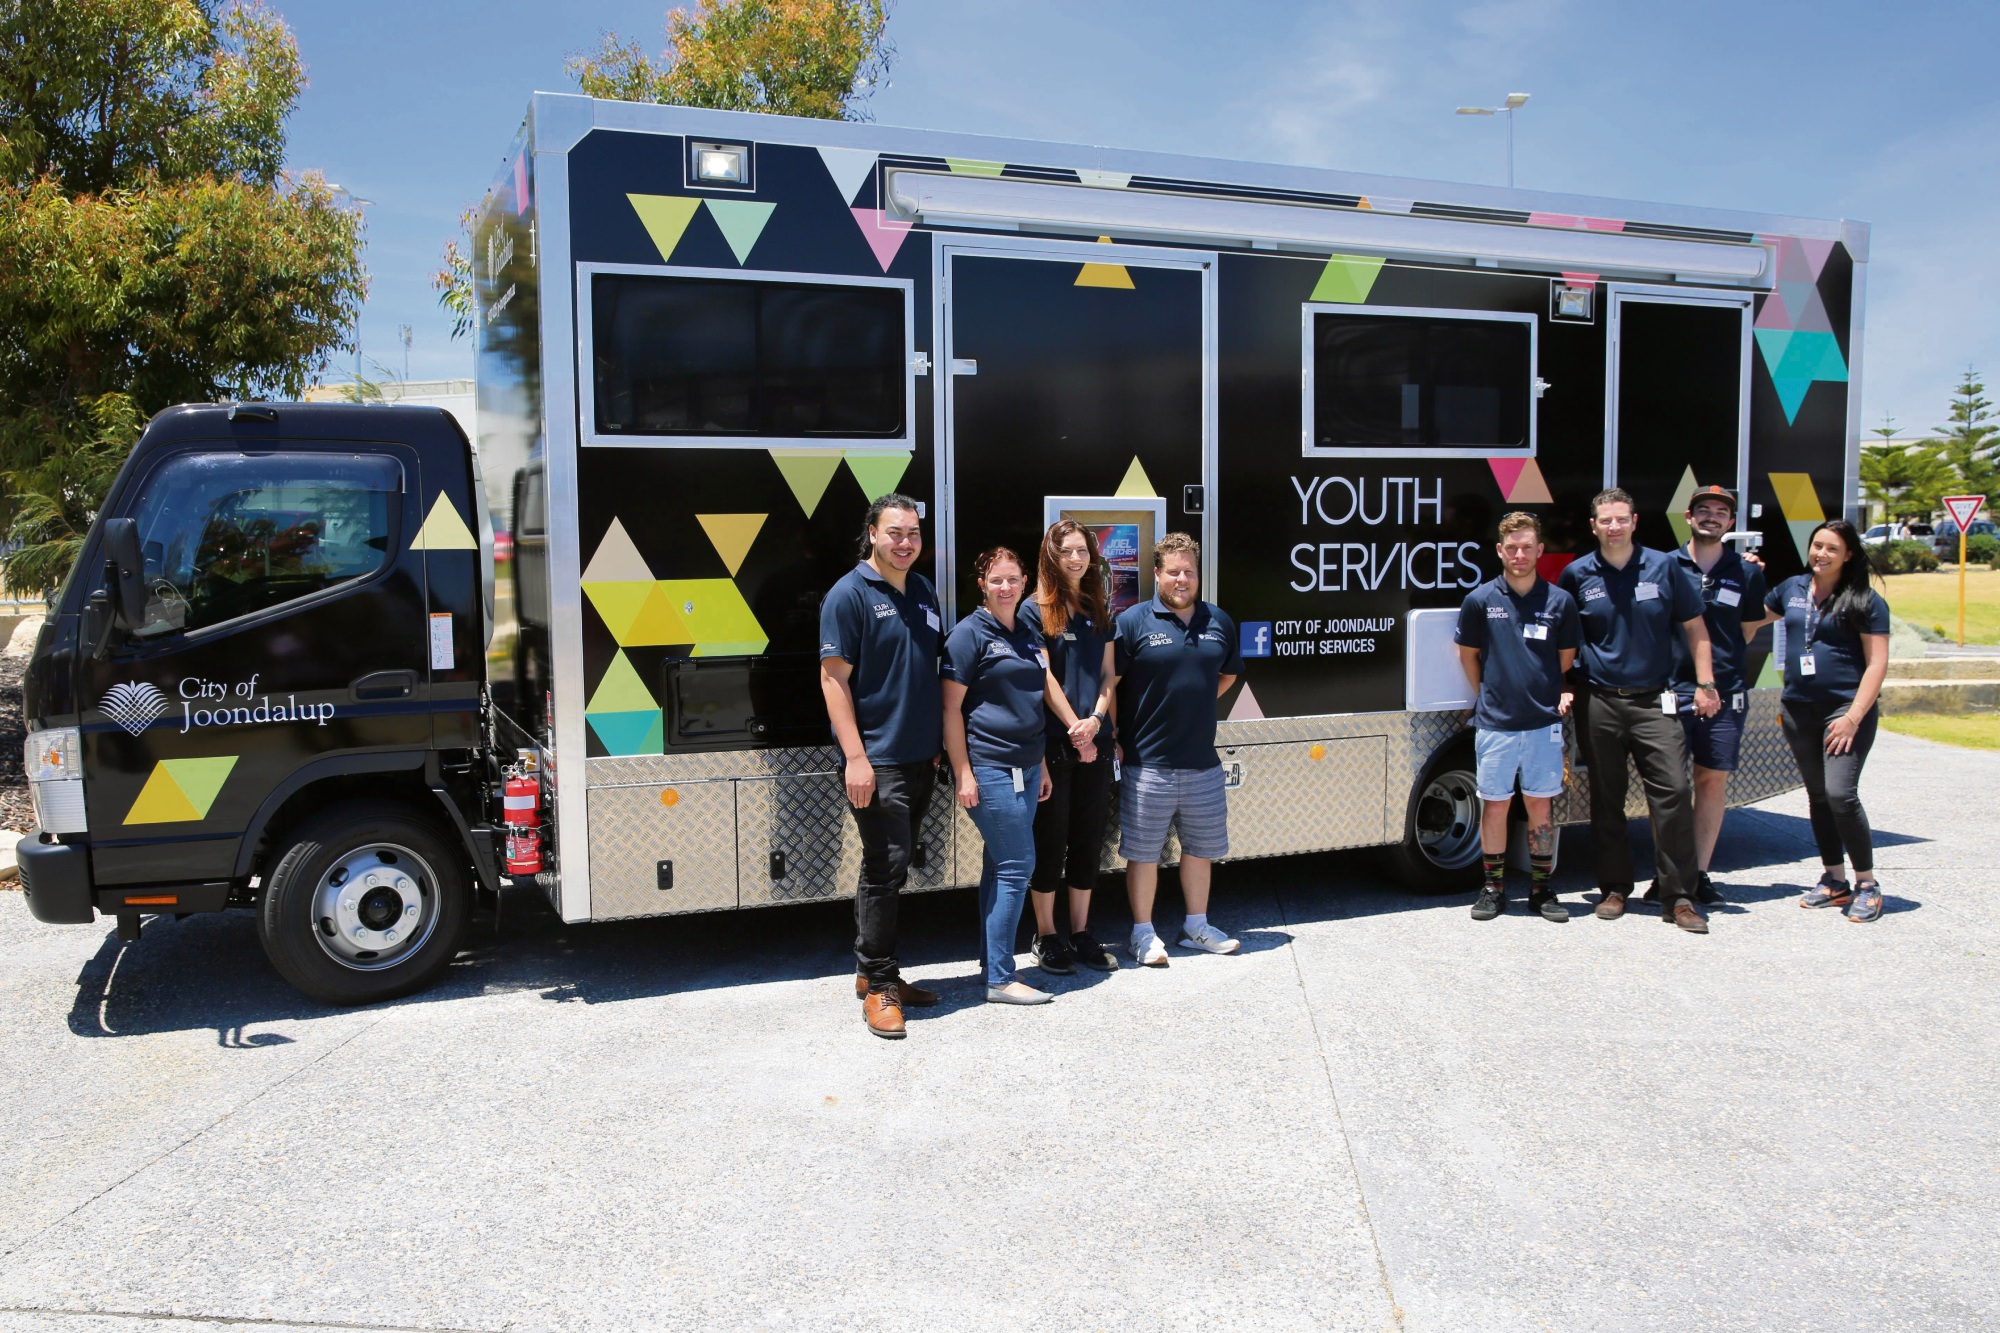 The City of Joondalup's youth service team with the strikingly coloured new truck.